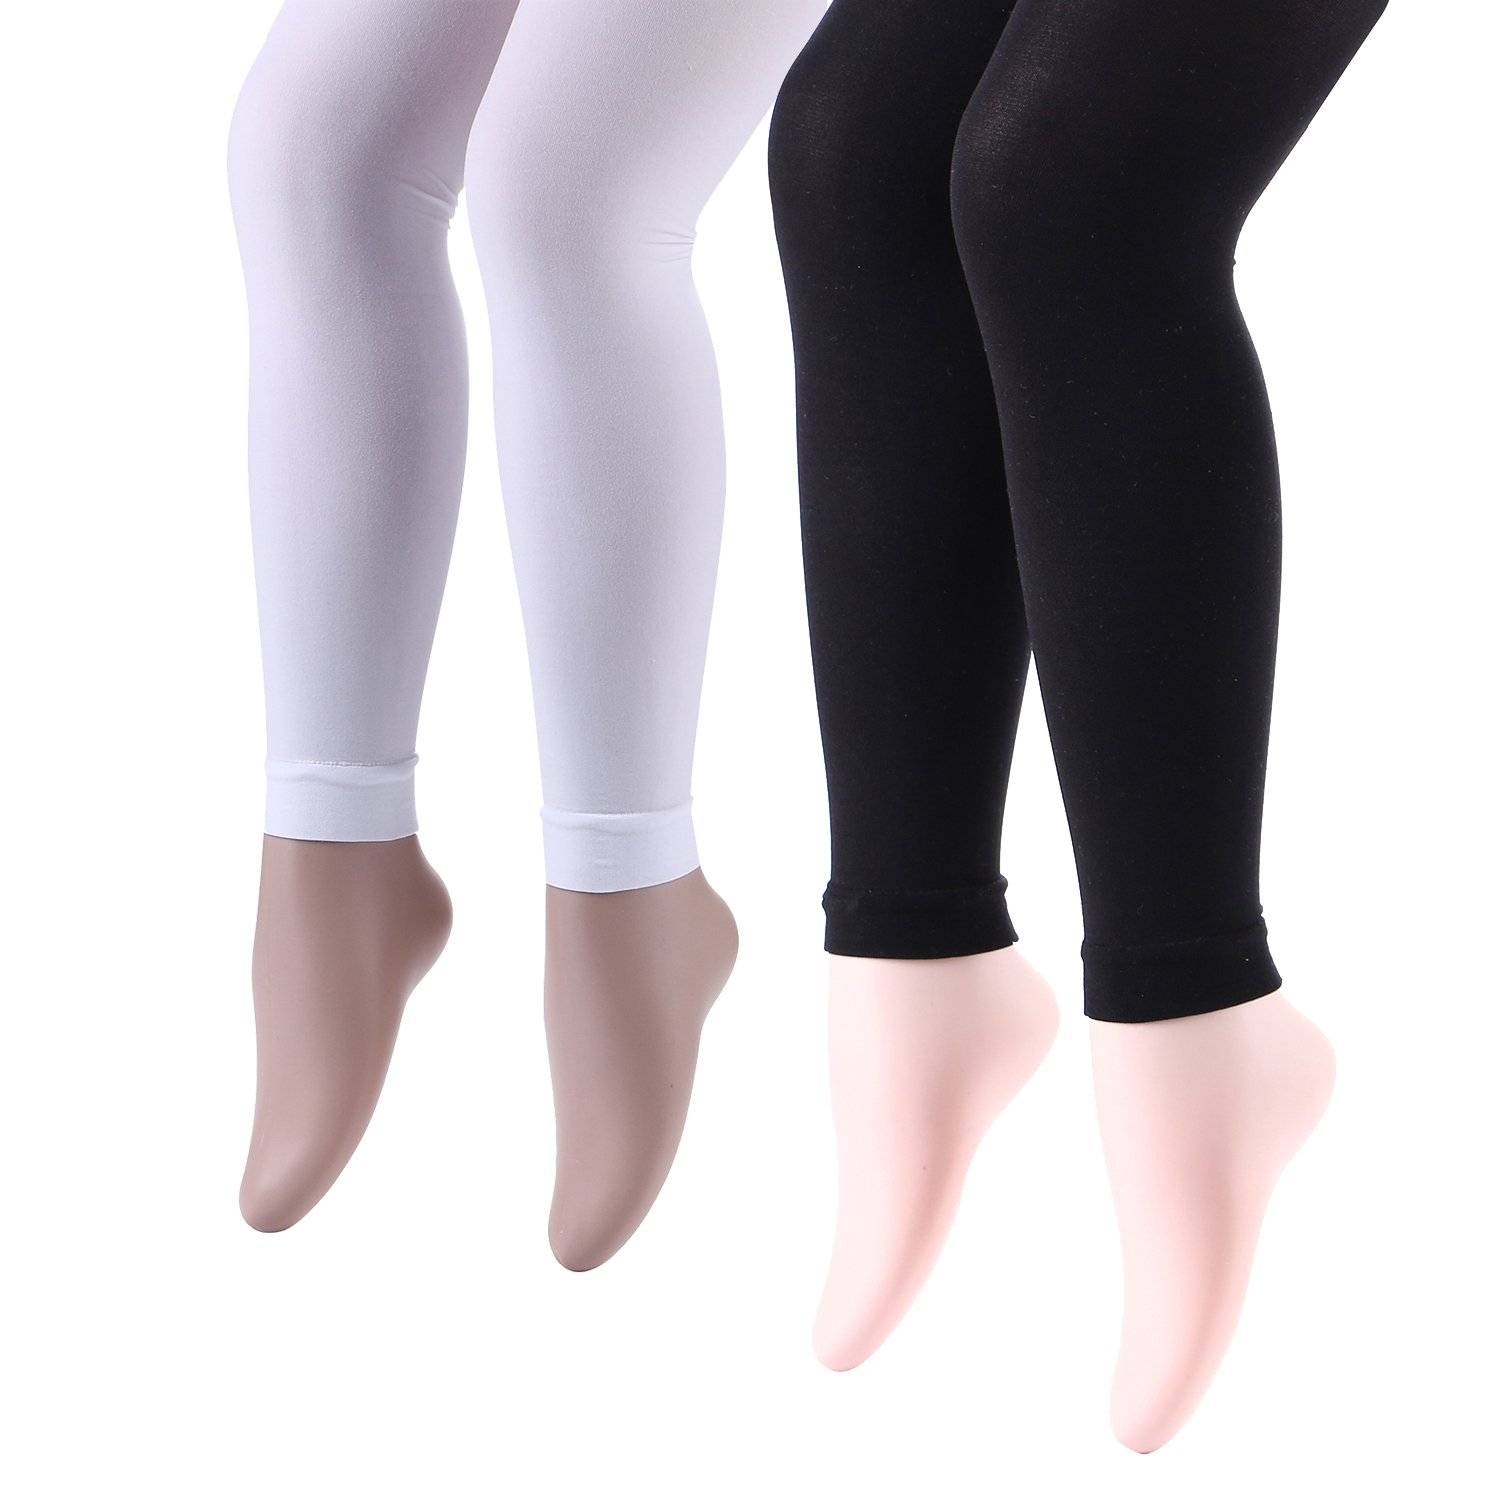 Elitimmy Big Girls Black and White 2 Pairs Footless Tights (7Y-9Y)